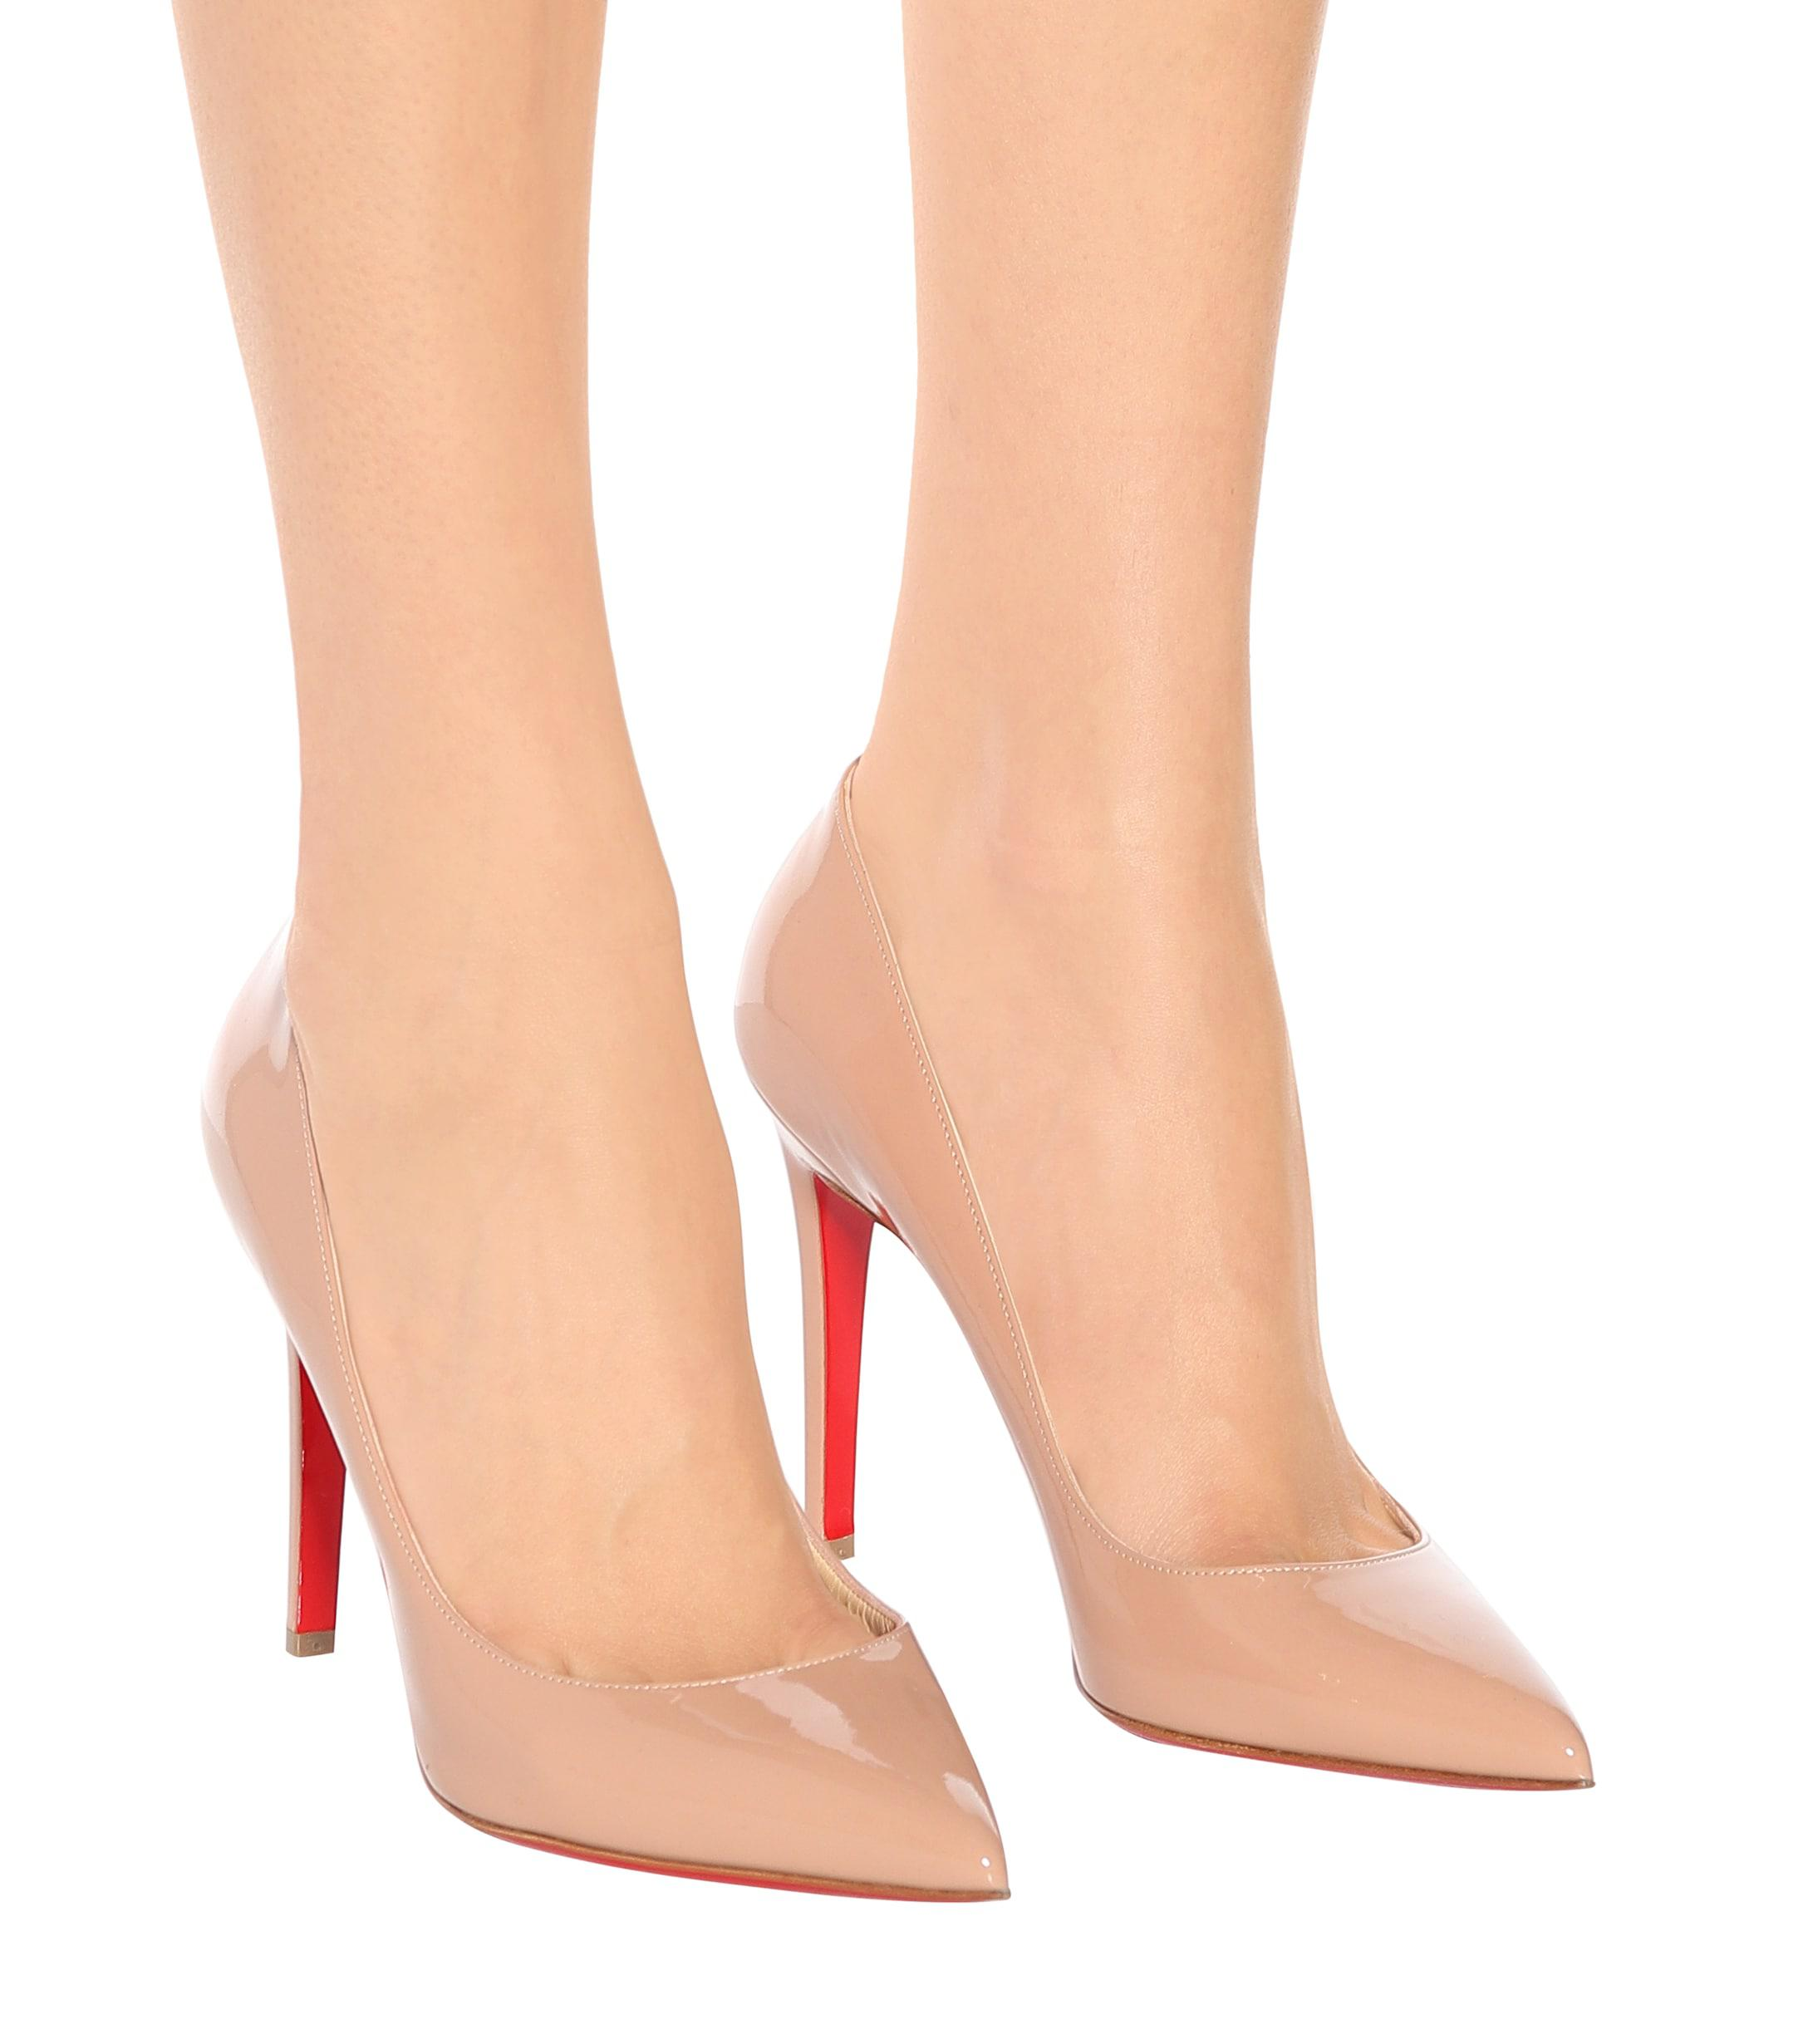 f0cee1cf3b99 Christian Louboutin Pigalle 100 Patent Leather Pumps in Natural - Lyst